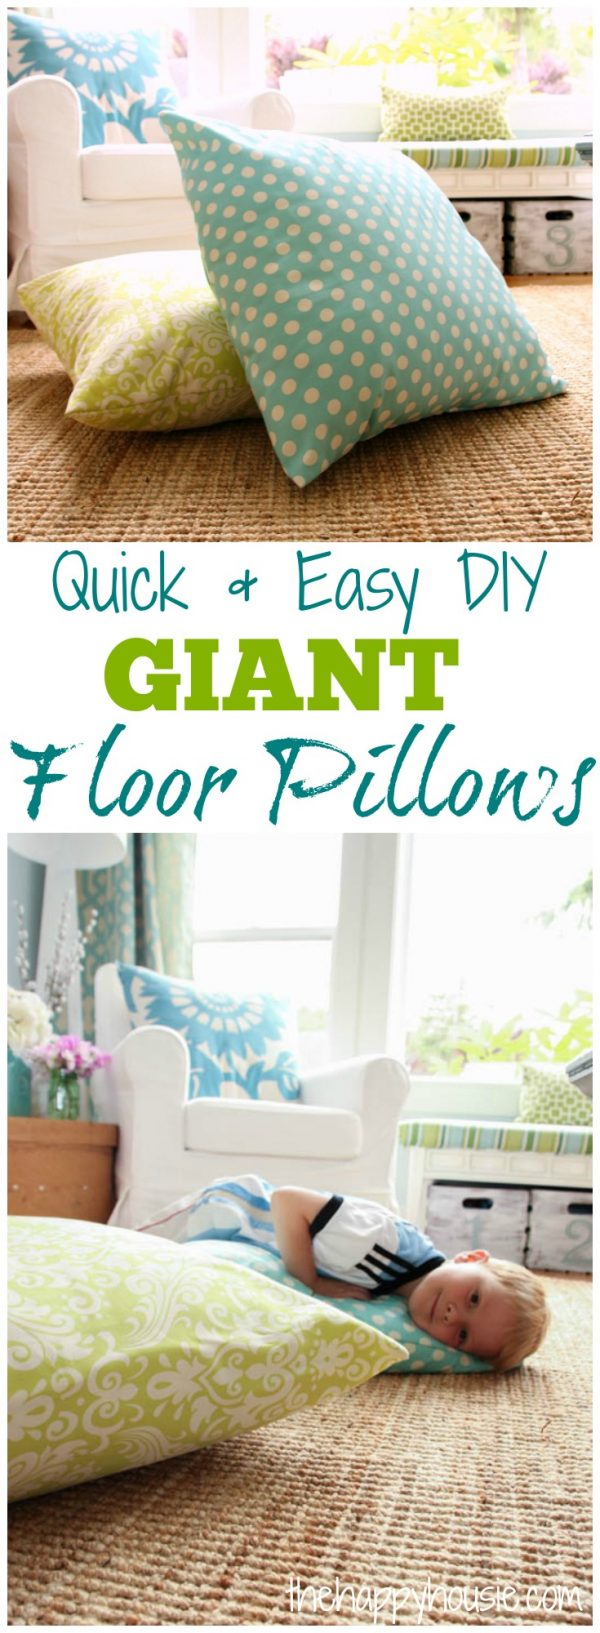 Innovative Diy Giant Floor Pillows The Happy Housie Medium